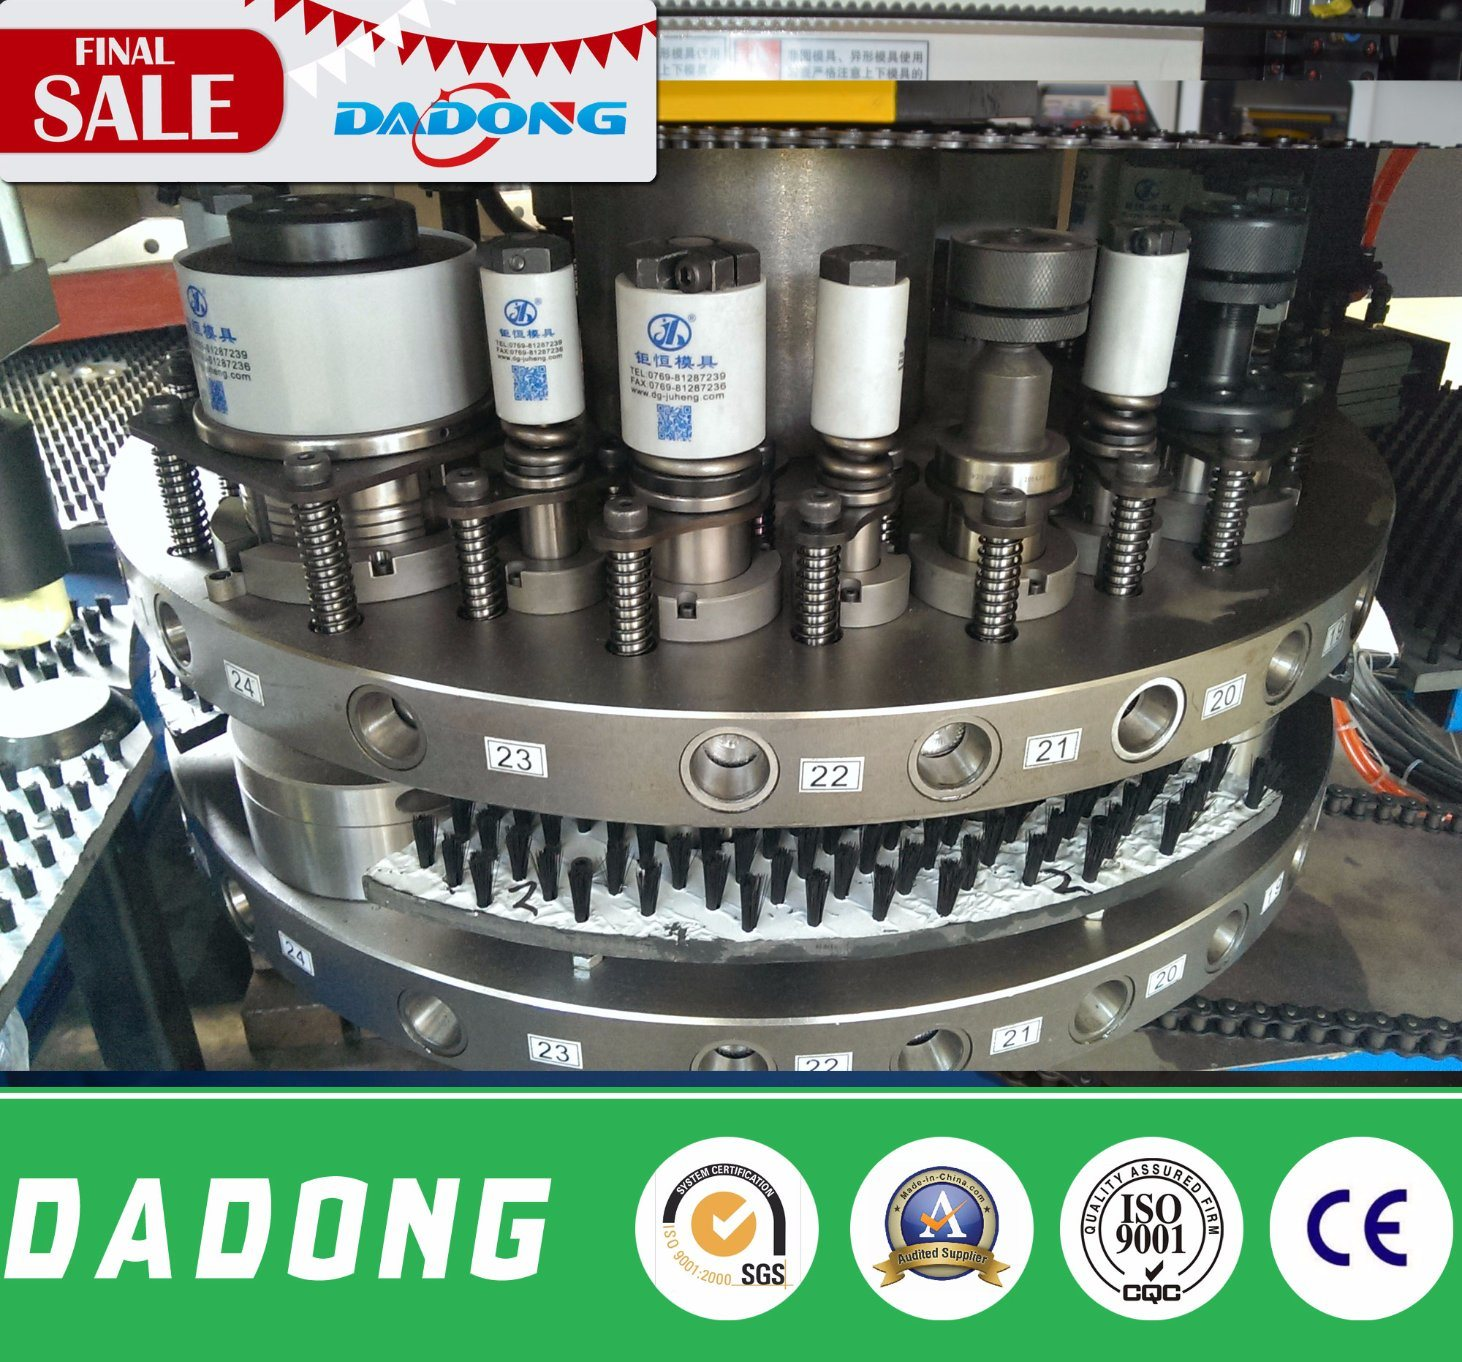 Dadong T30 CNC Turret Punch Press/Punching Machine/Stamping Machine for Punching Holes pictures & photos